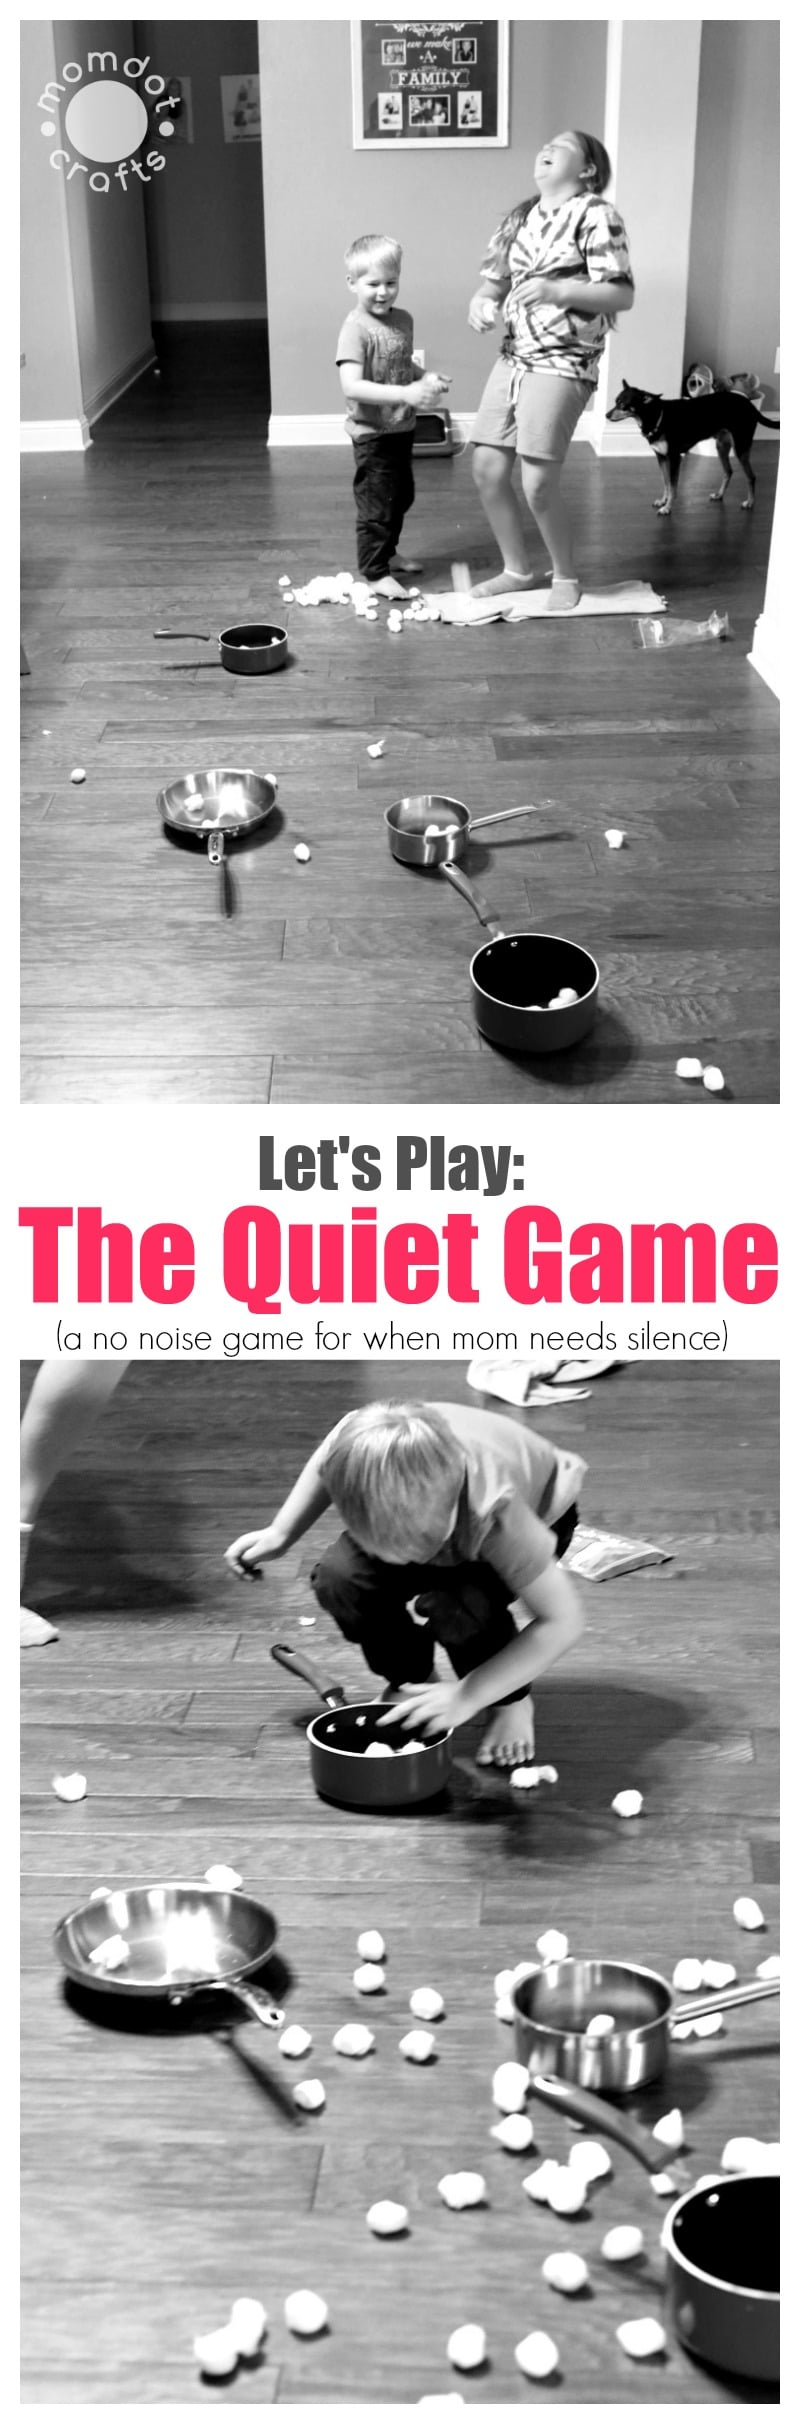 Let's Play The Quiet Game : Simple indoor game with household items where the only noise is laughter, simple child game for parties, at home fun- DIY kids game